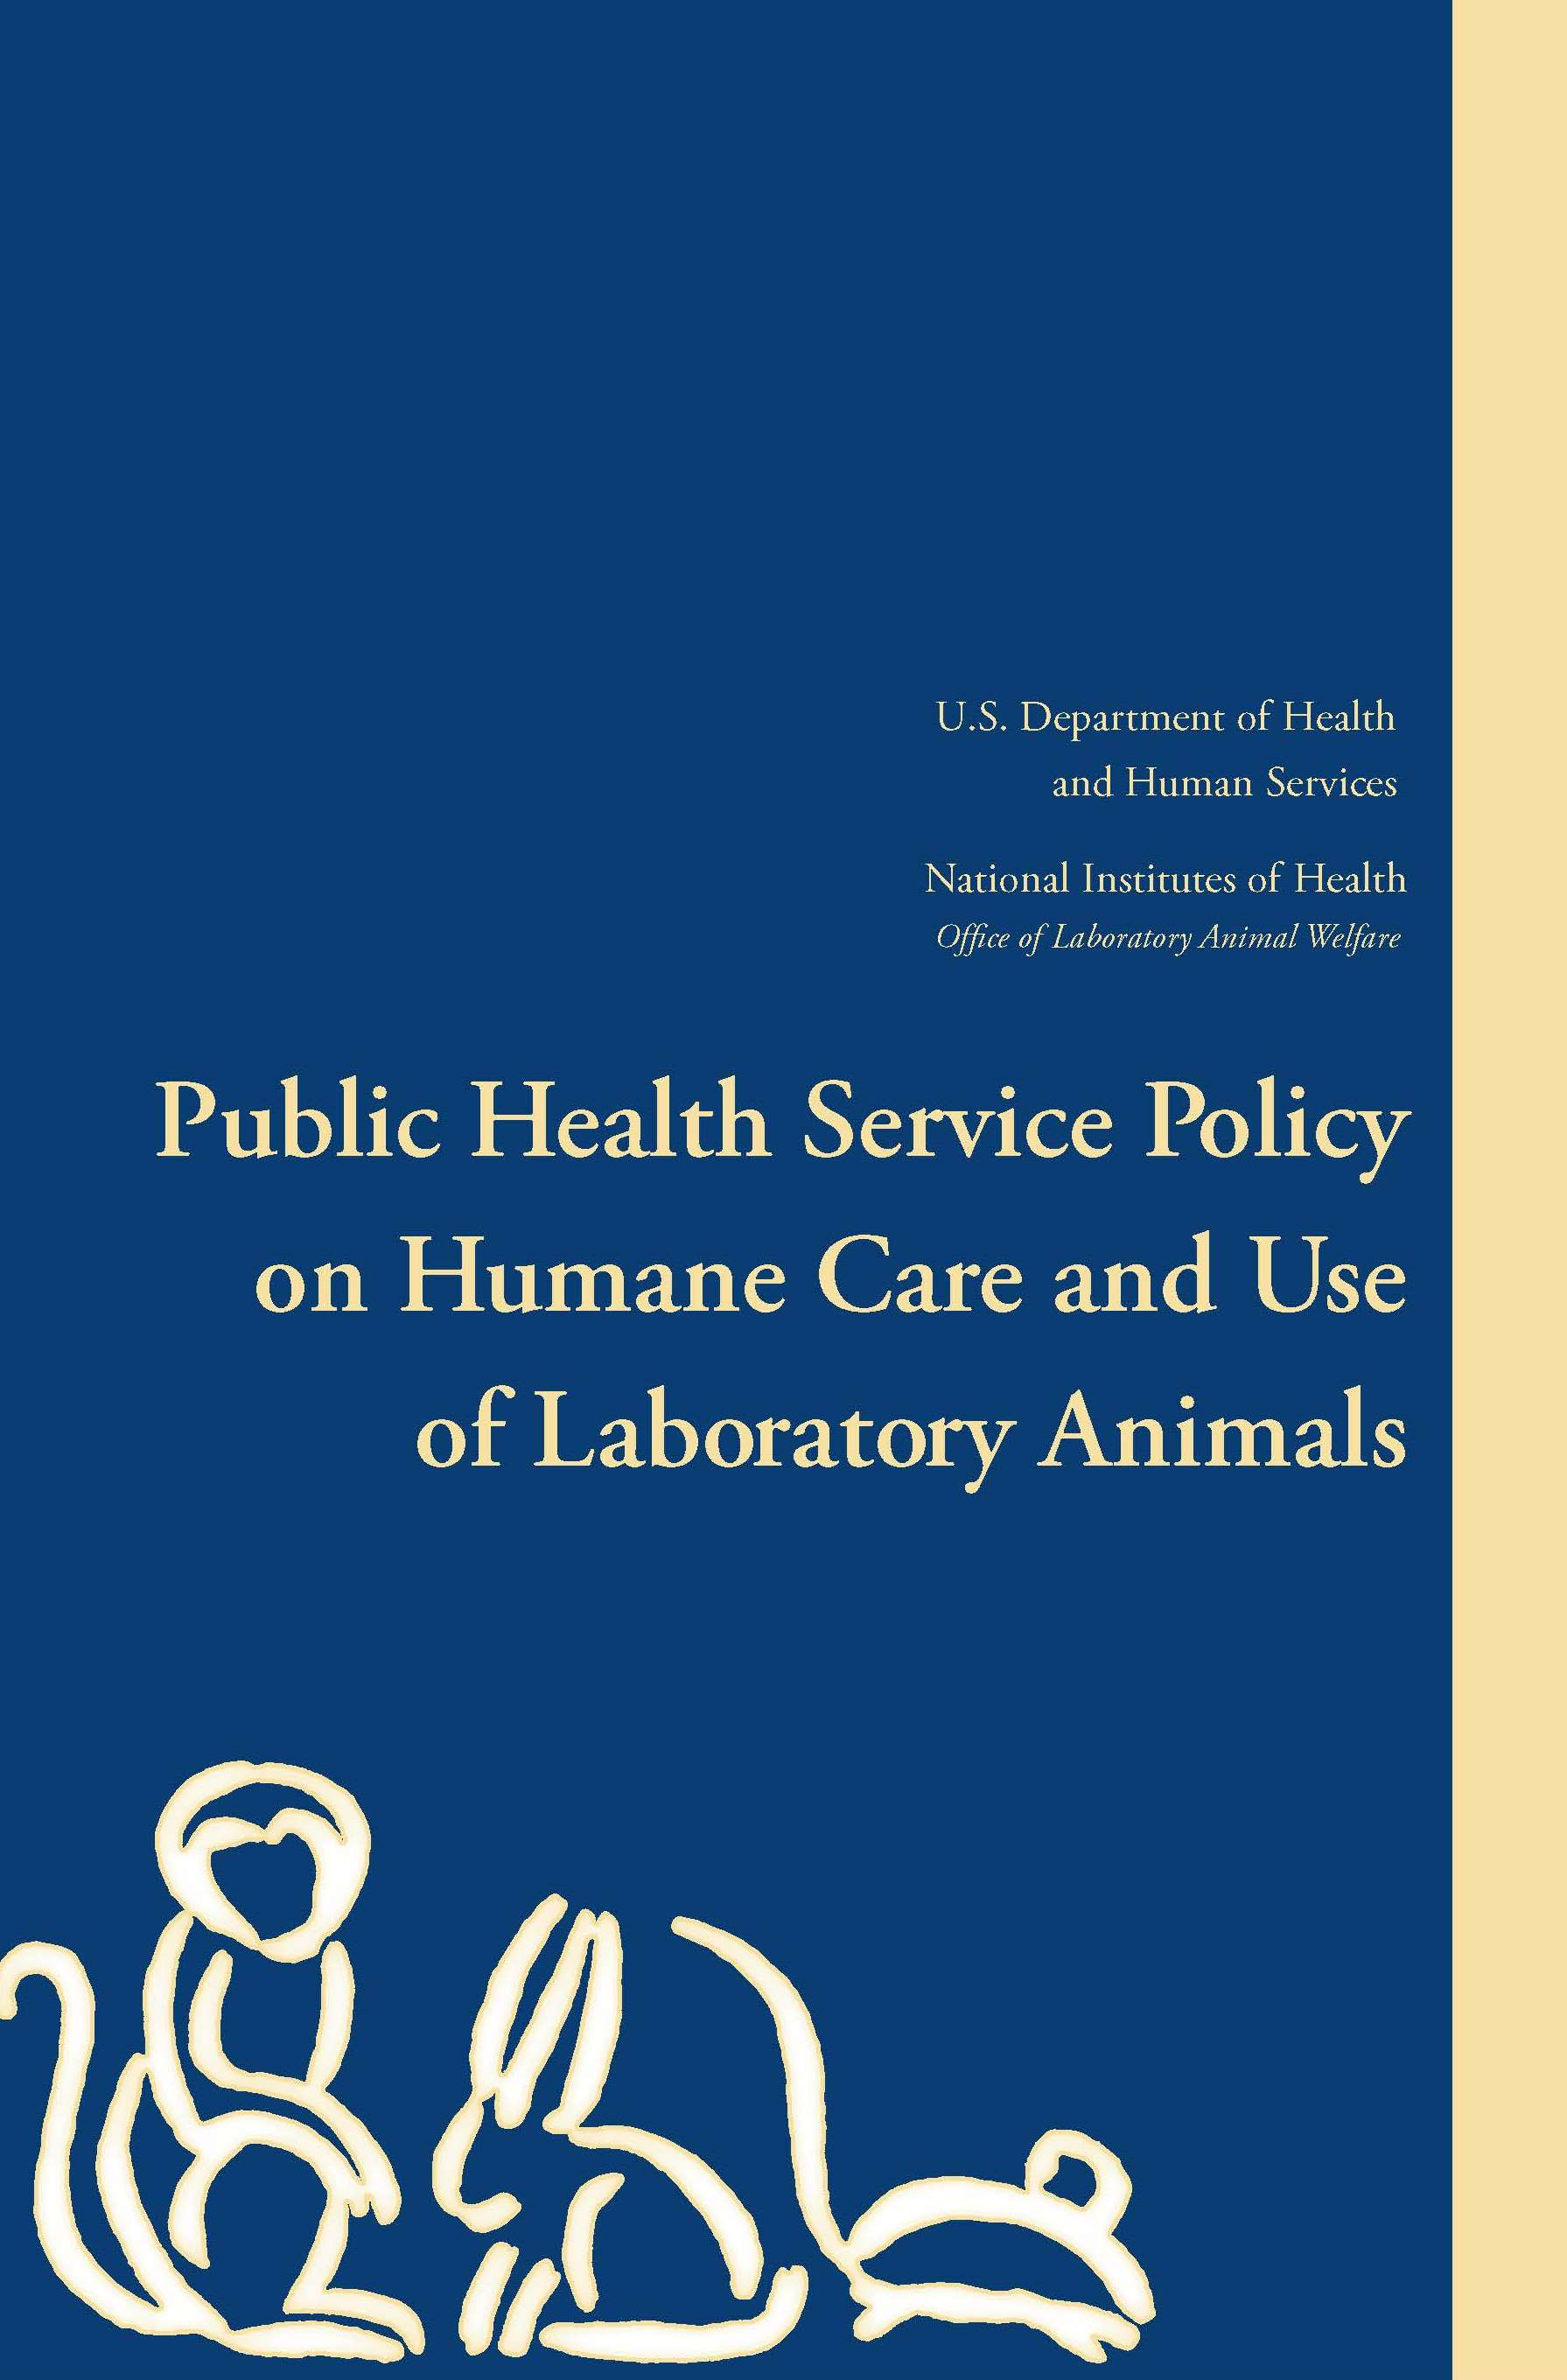 Public Health Service Policy on Humane Care and Use of Laboratory Animals